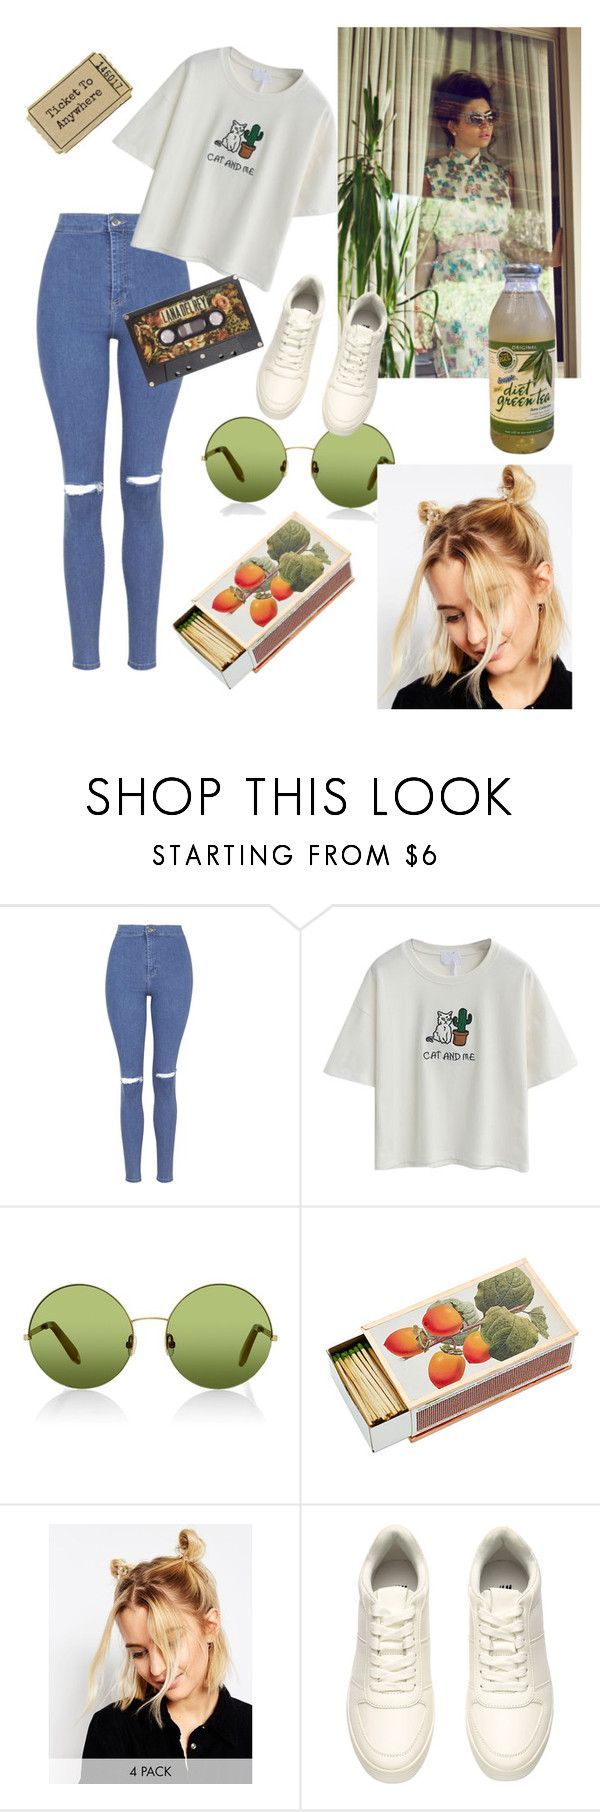 """Hermit the frog"" by vanessaserna20 ❤ liked on Polyvore featuring Topshop, Victoria, Victoria Beckham, Shandell's, ASOS and H&M"